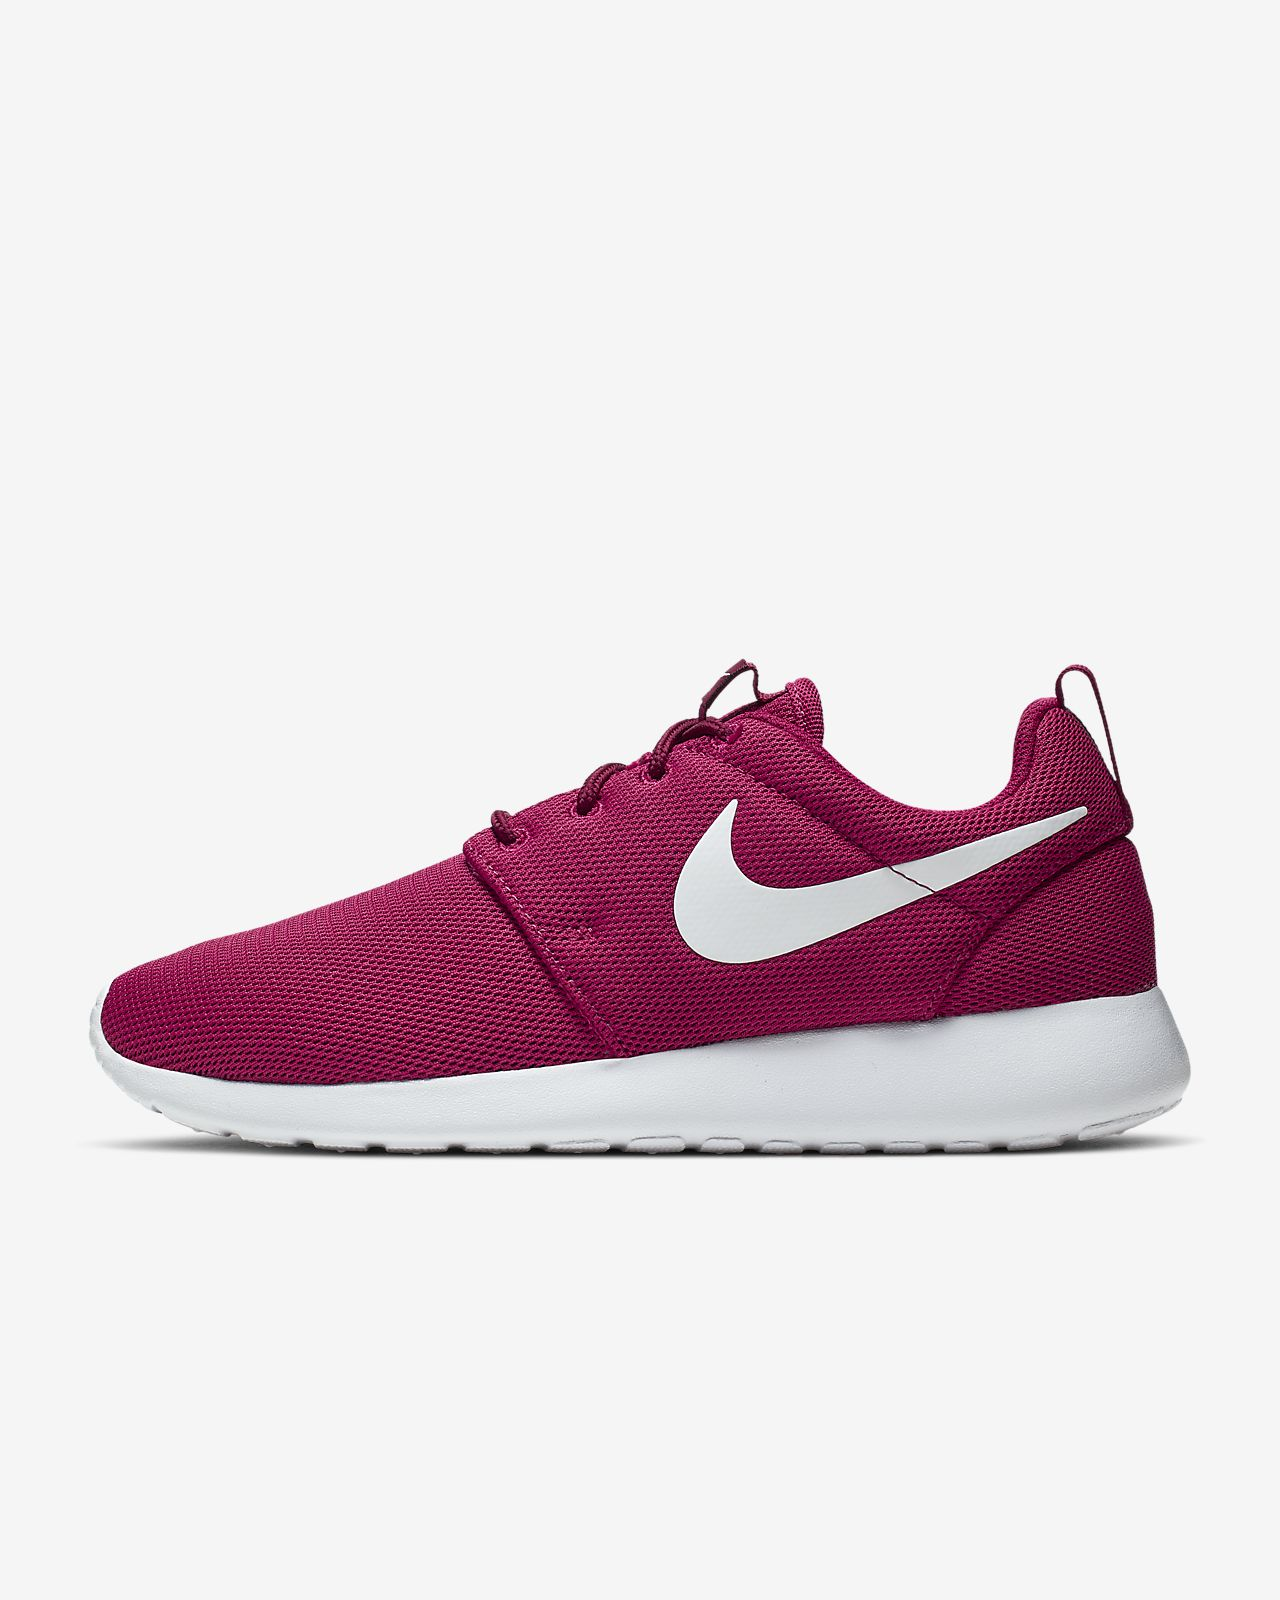 the latest e1df0 ba9c6 Nike Roshe One Women's Shoe